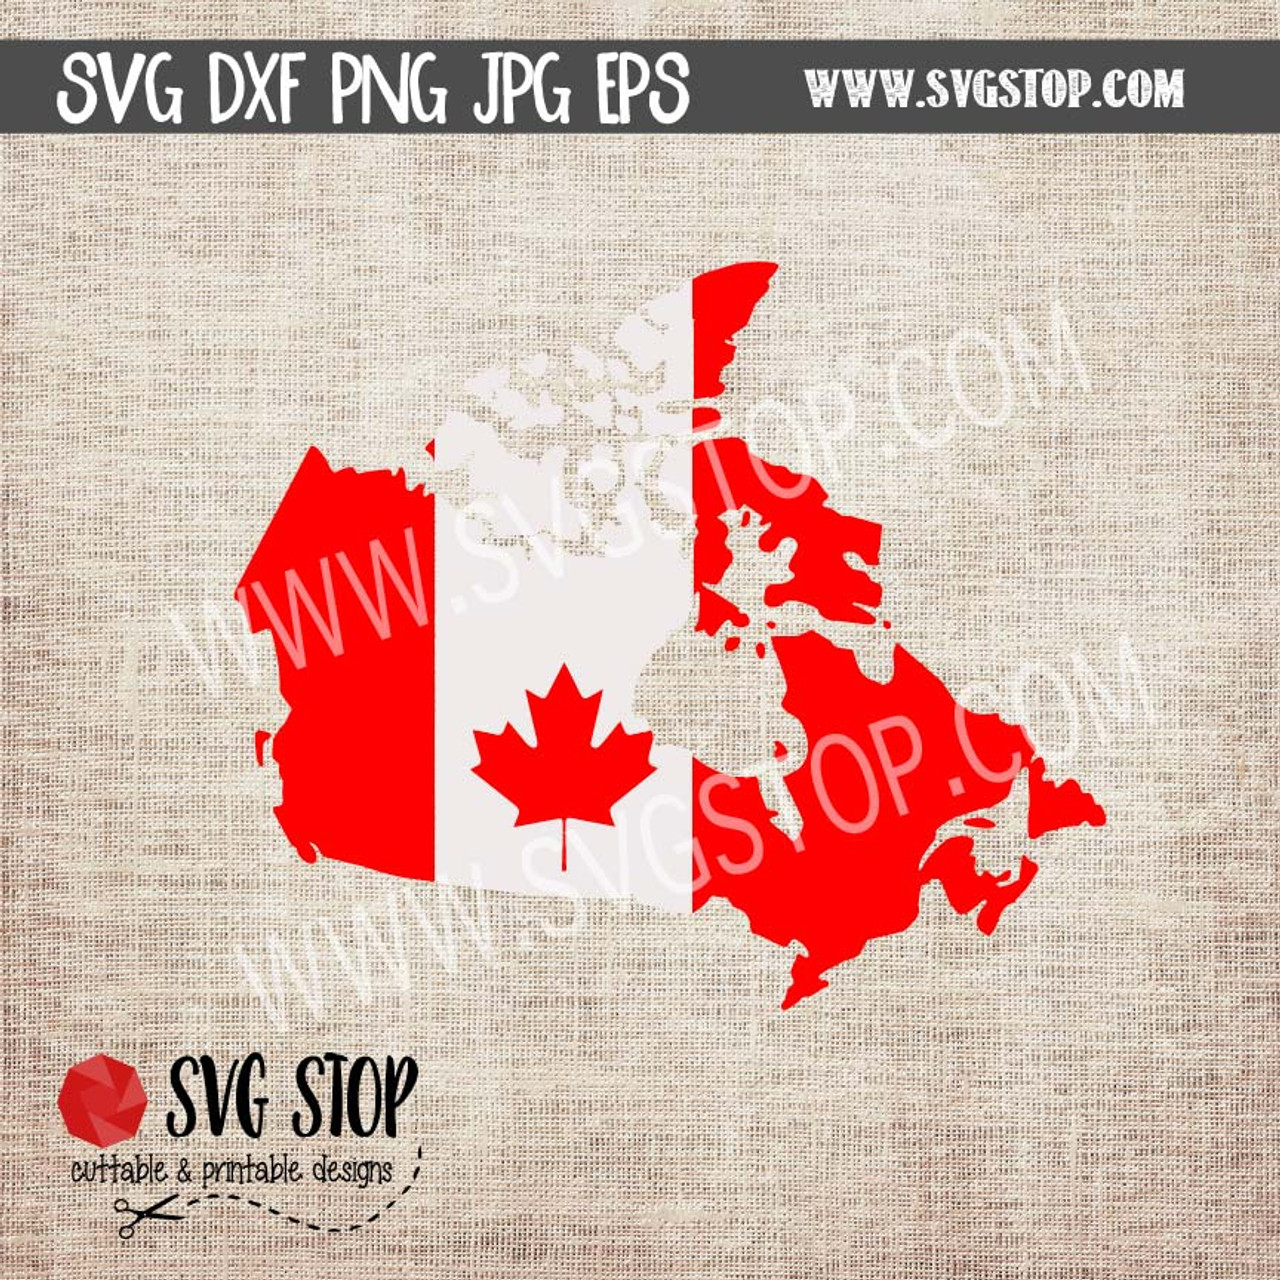 Map Of Canada Eps.Canada Flag Map Clip Art Cut Files The Svg Stop